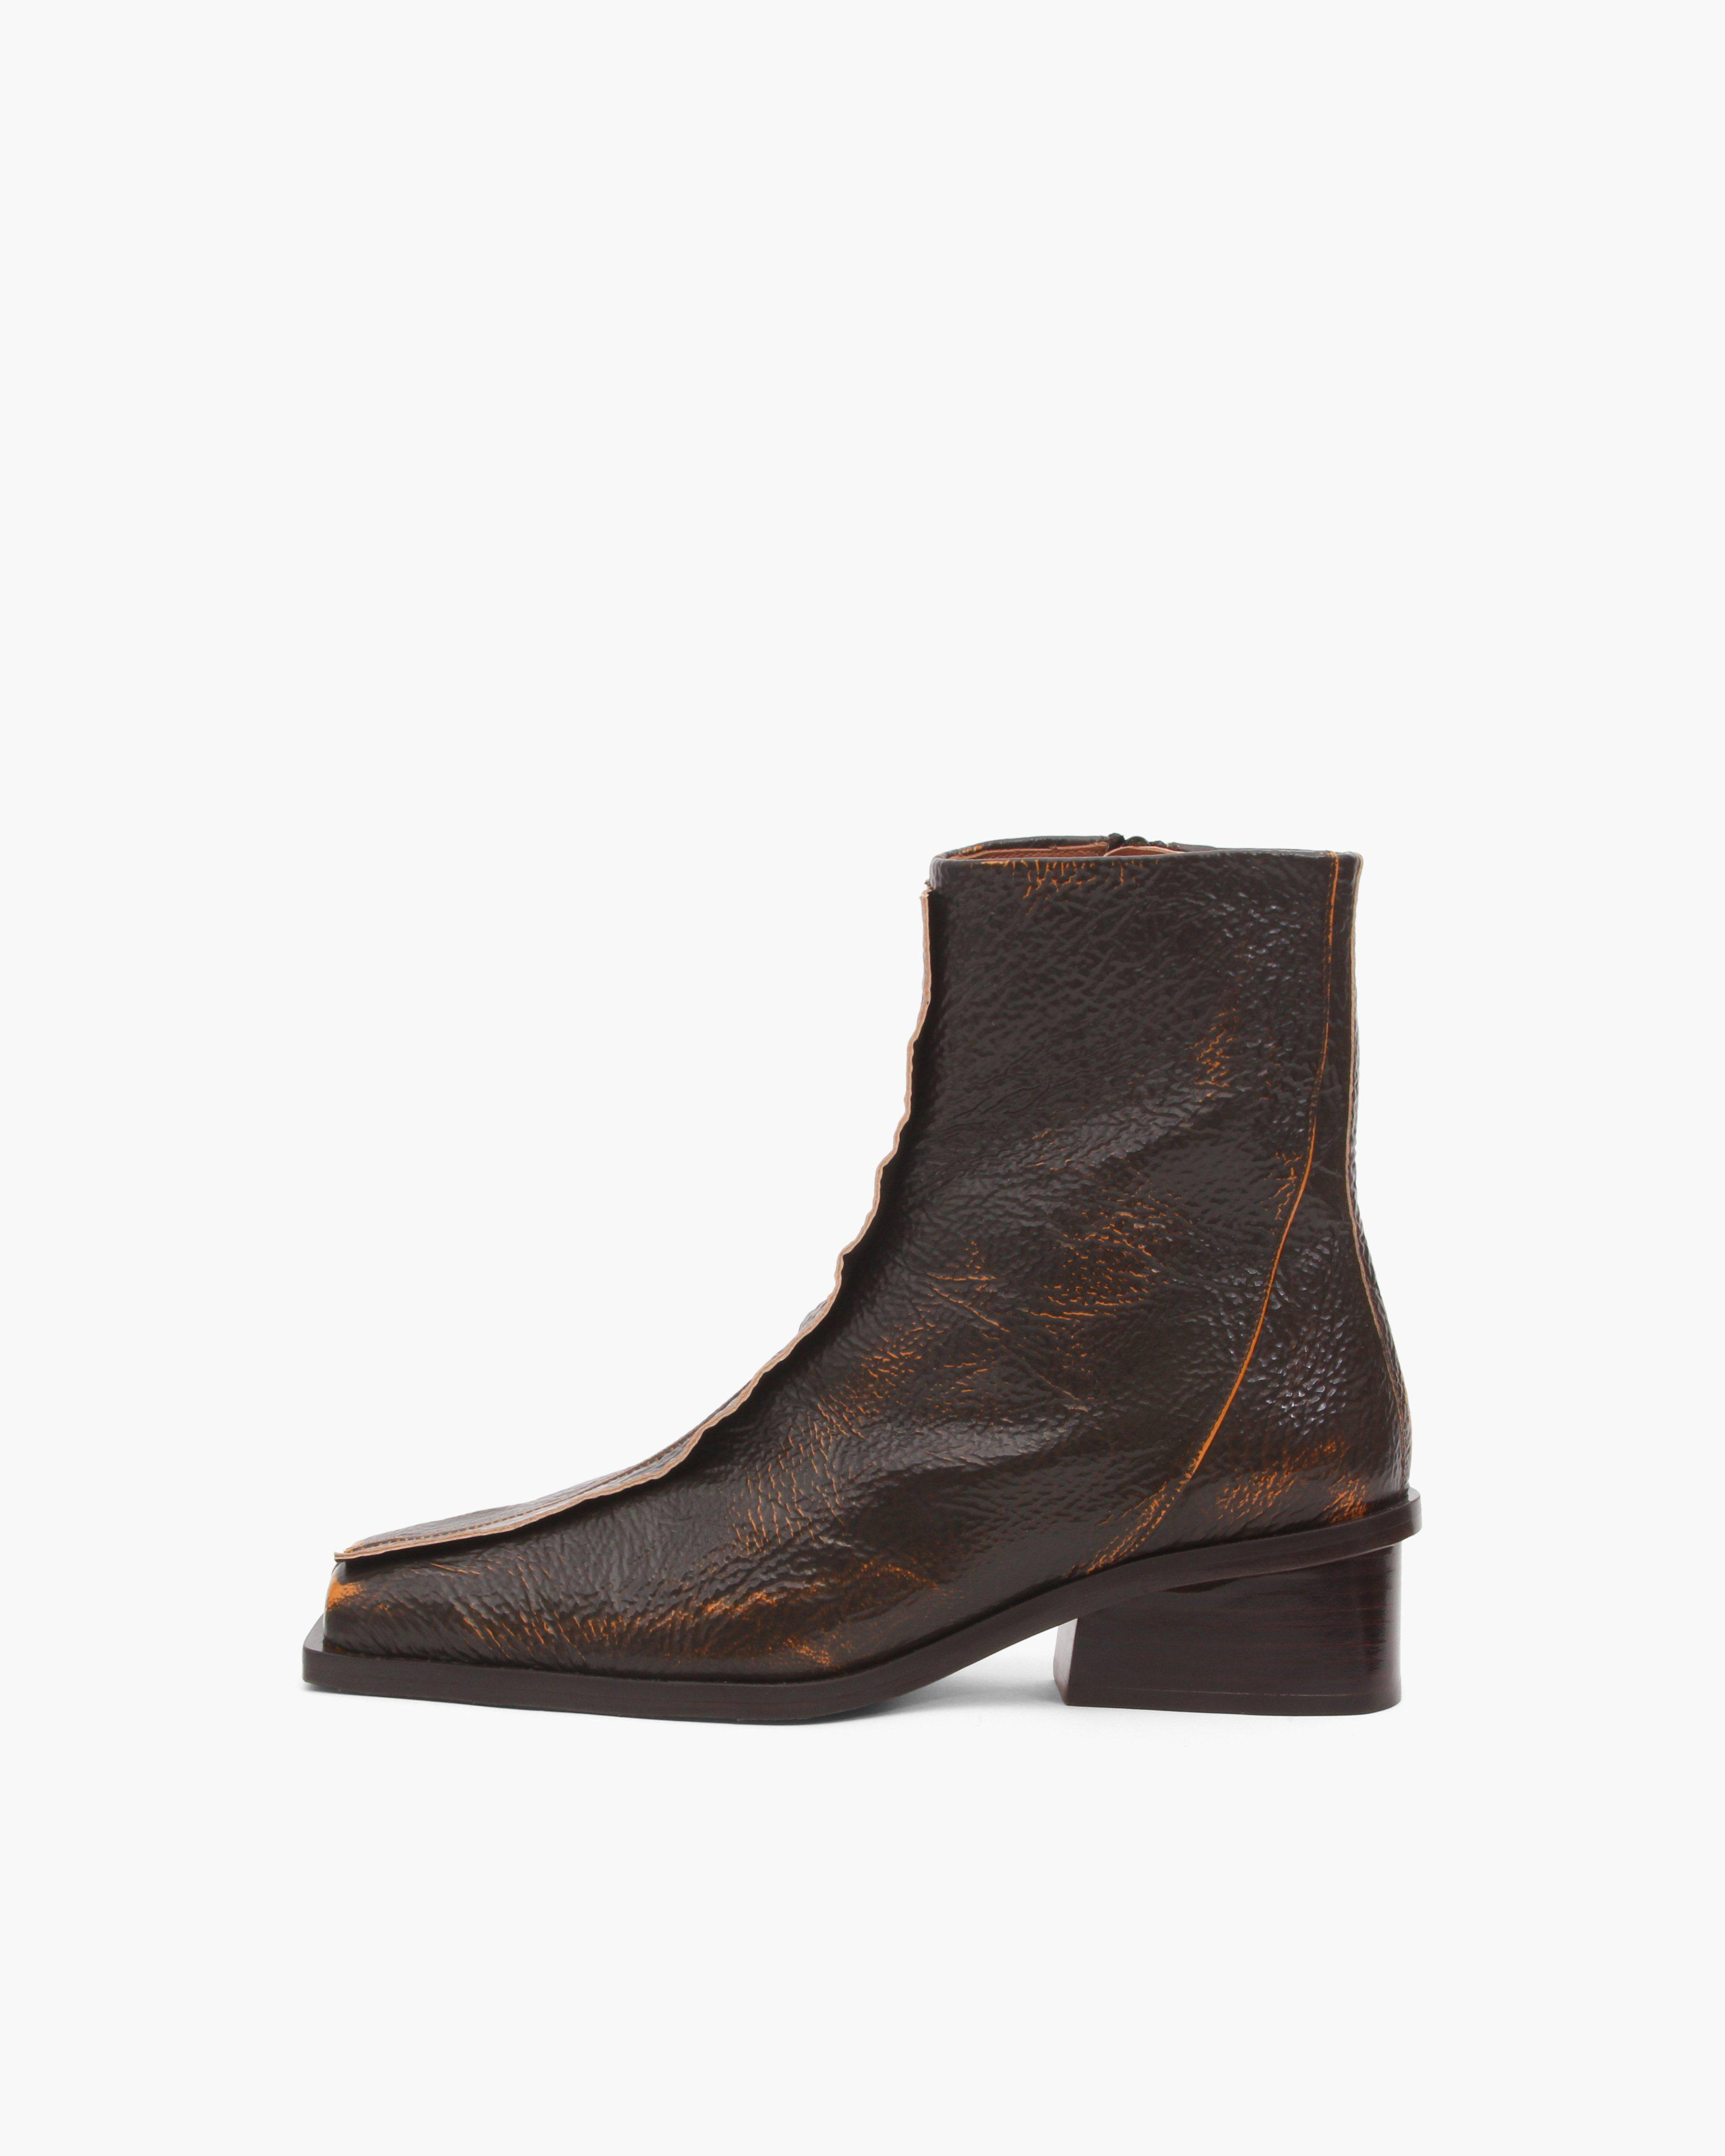 Miki Boots Leather Two-Tone Brown